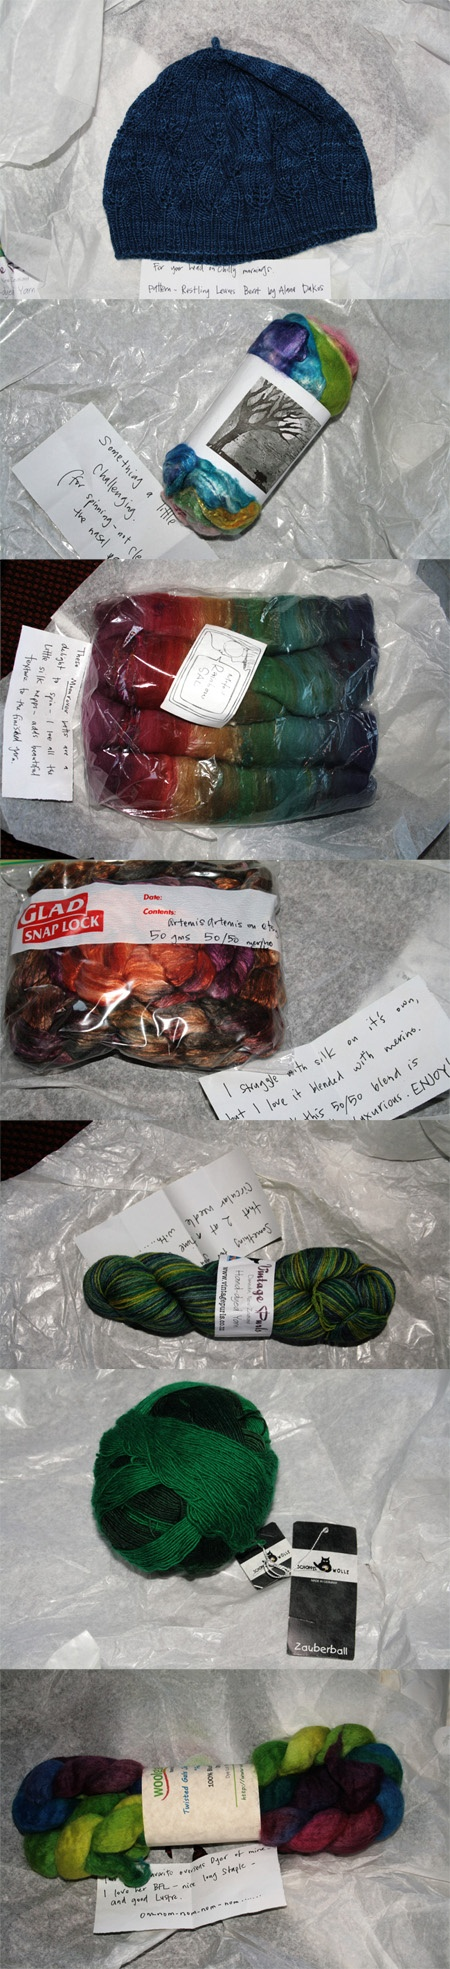 Items from my parcel (there was also a chocolate bar and some Tangy Fruit jubes...:)